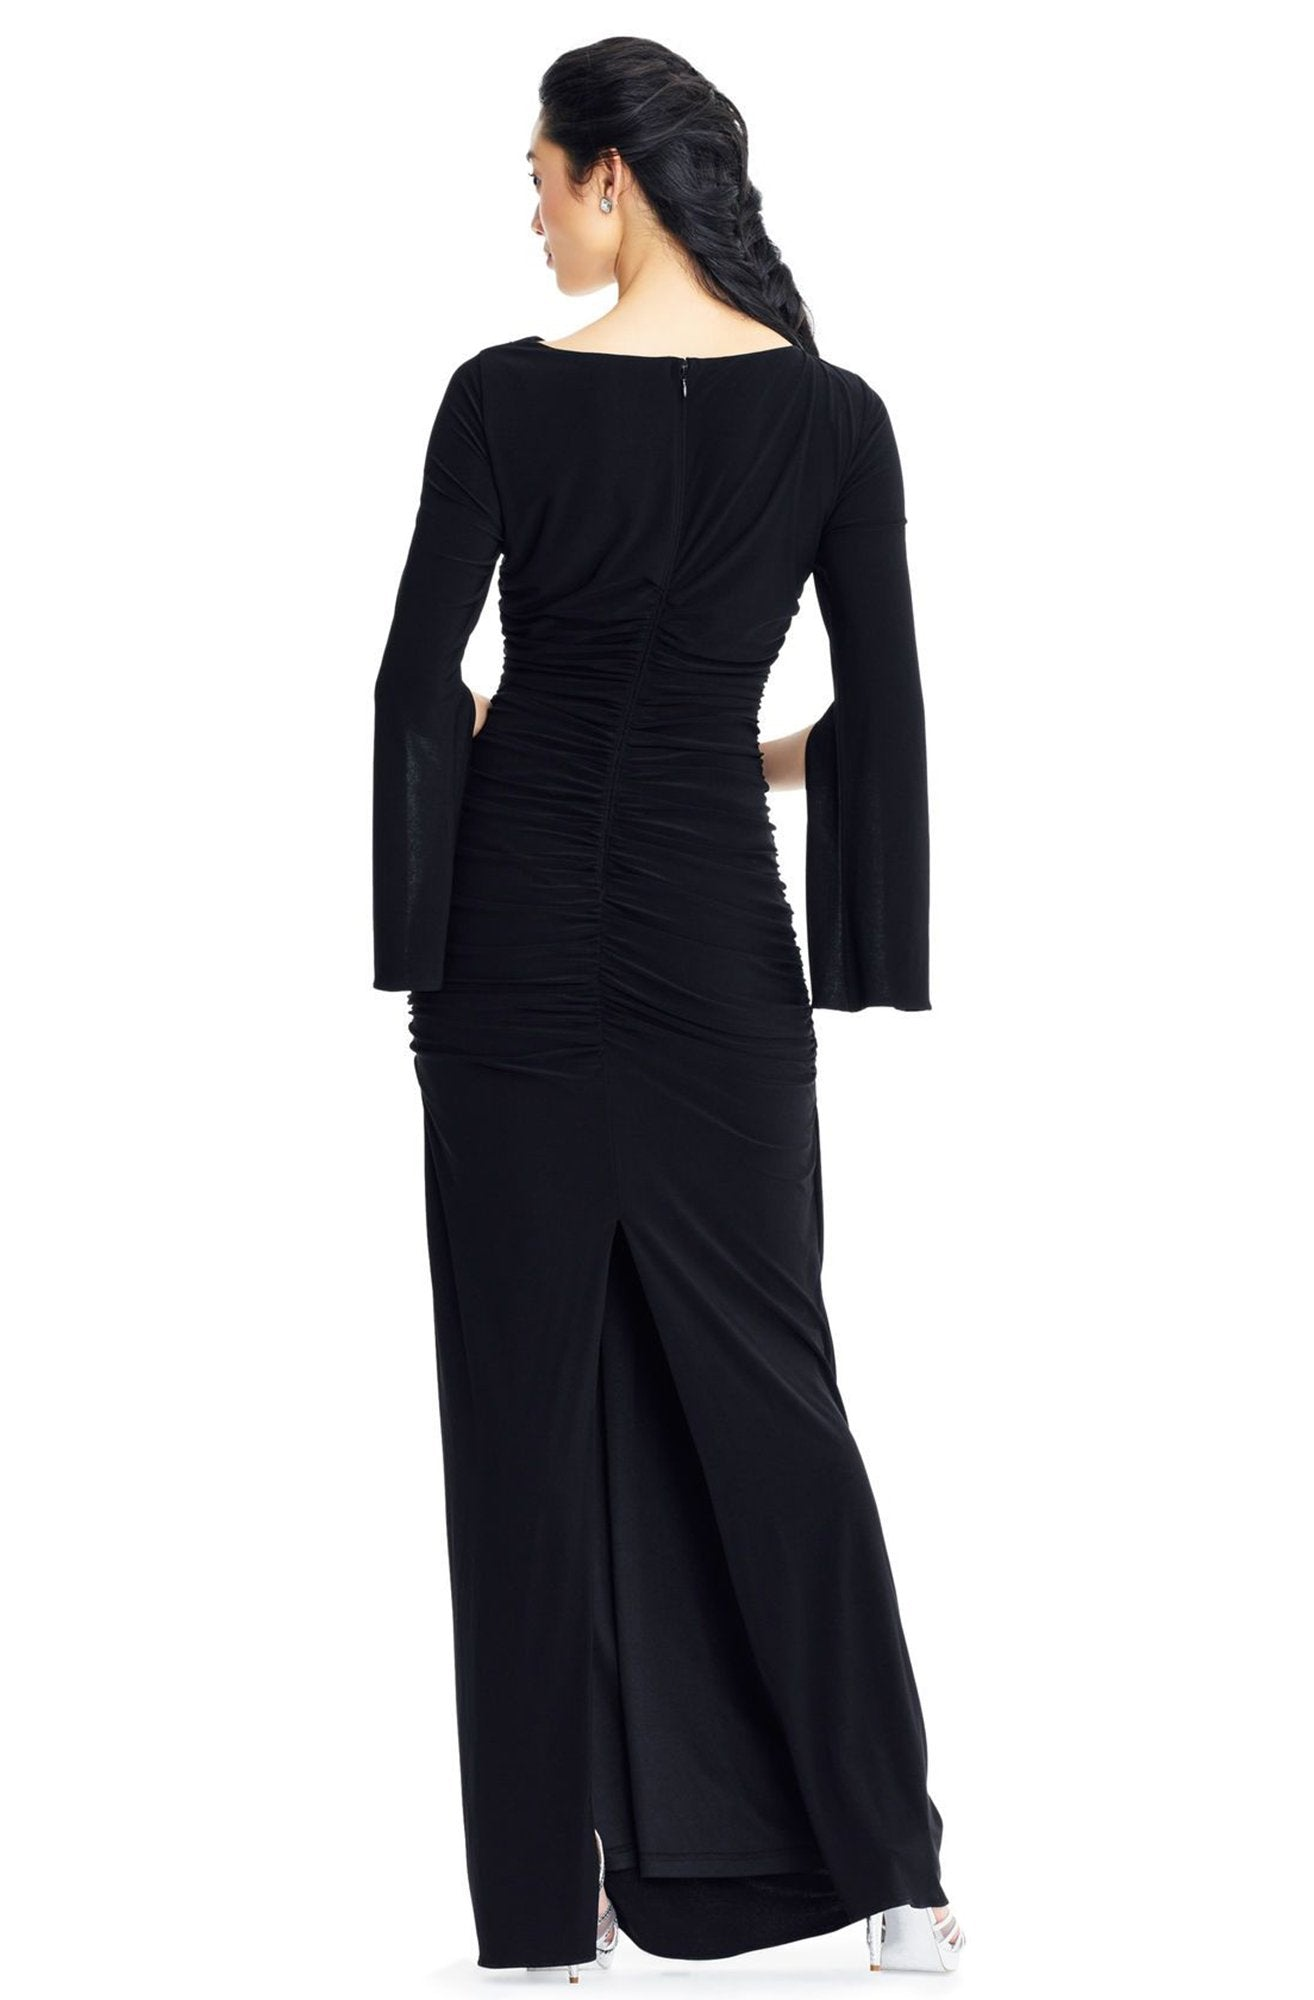 Adrianna Papell - AP1E203780 Split Sleeve Bateau Sheath Dress In Black